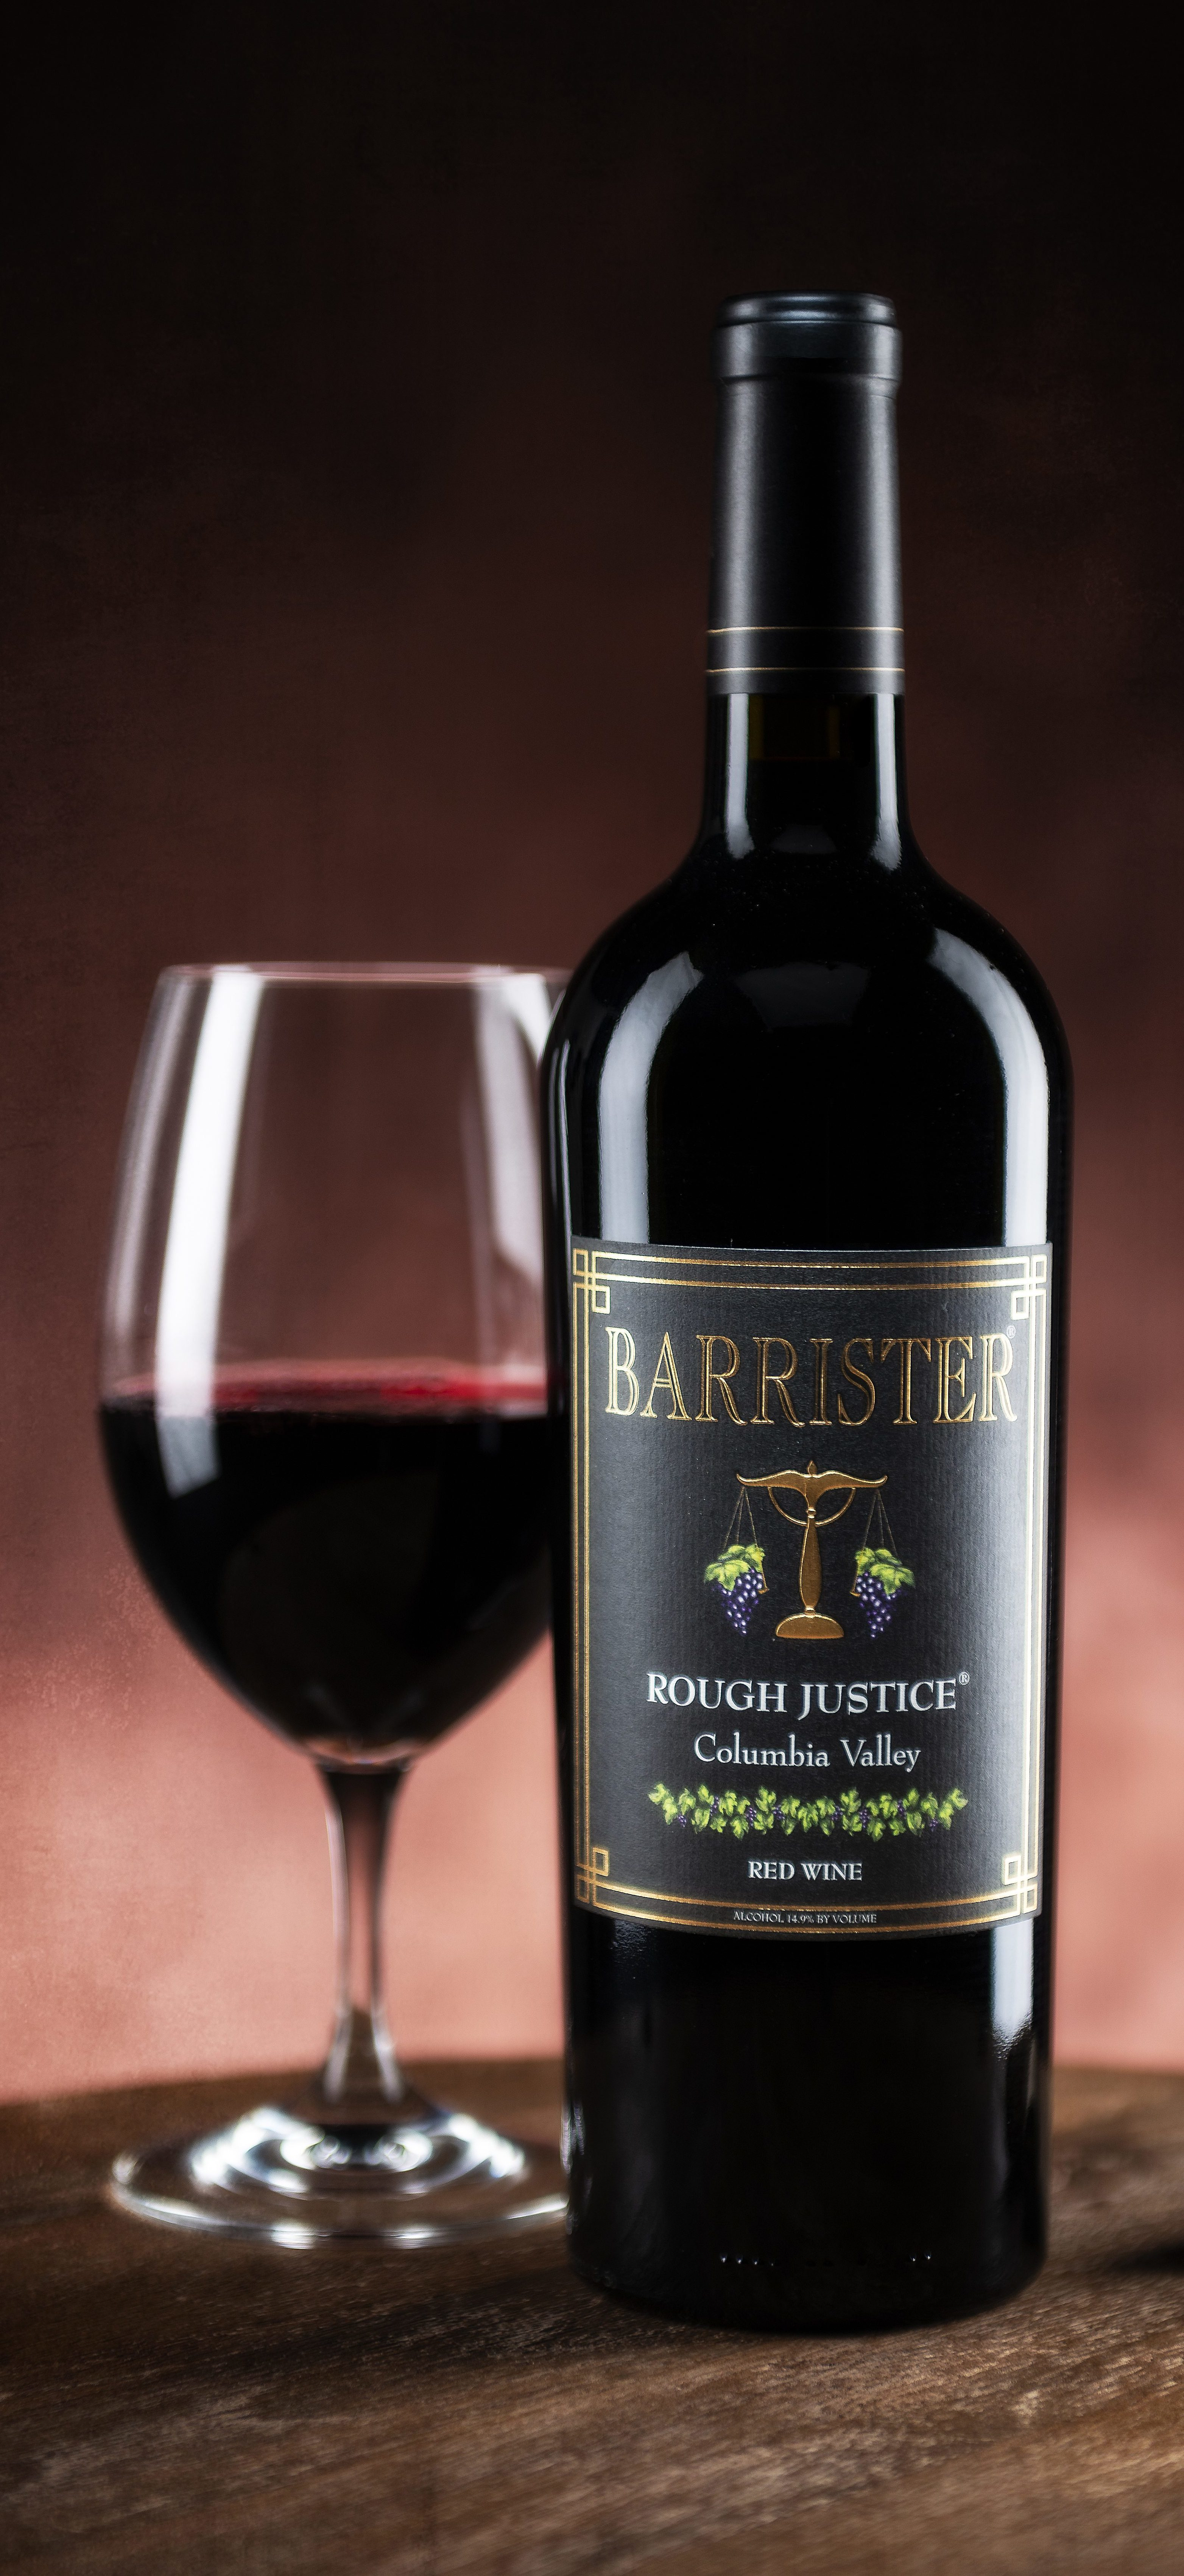 Barrister Winery